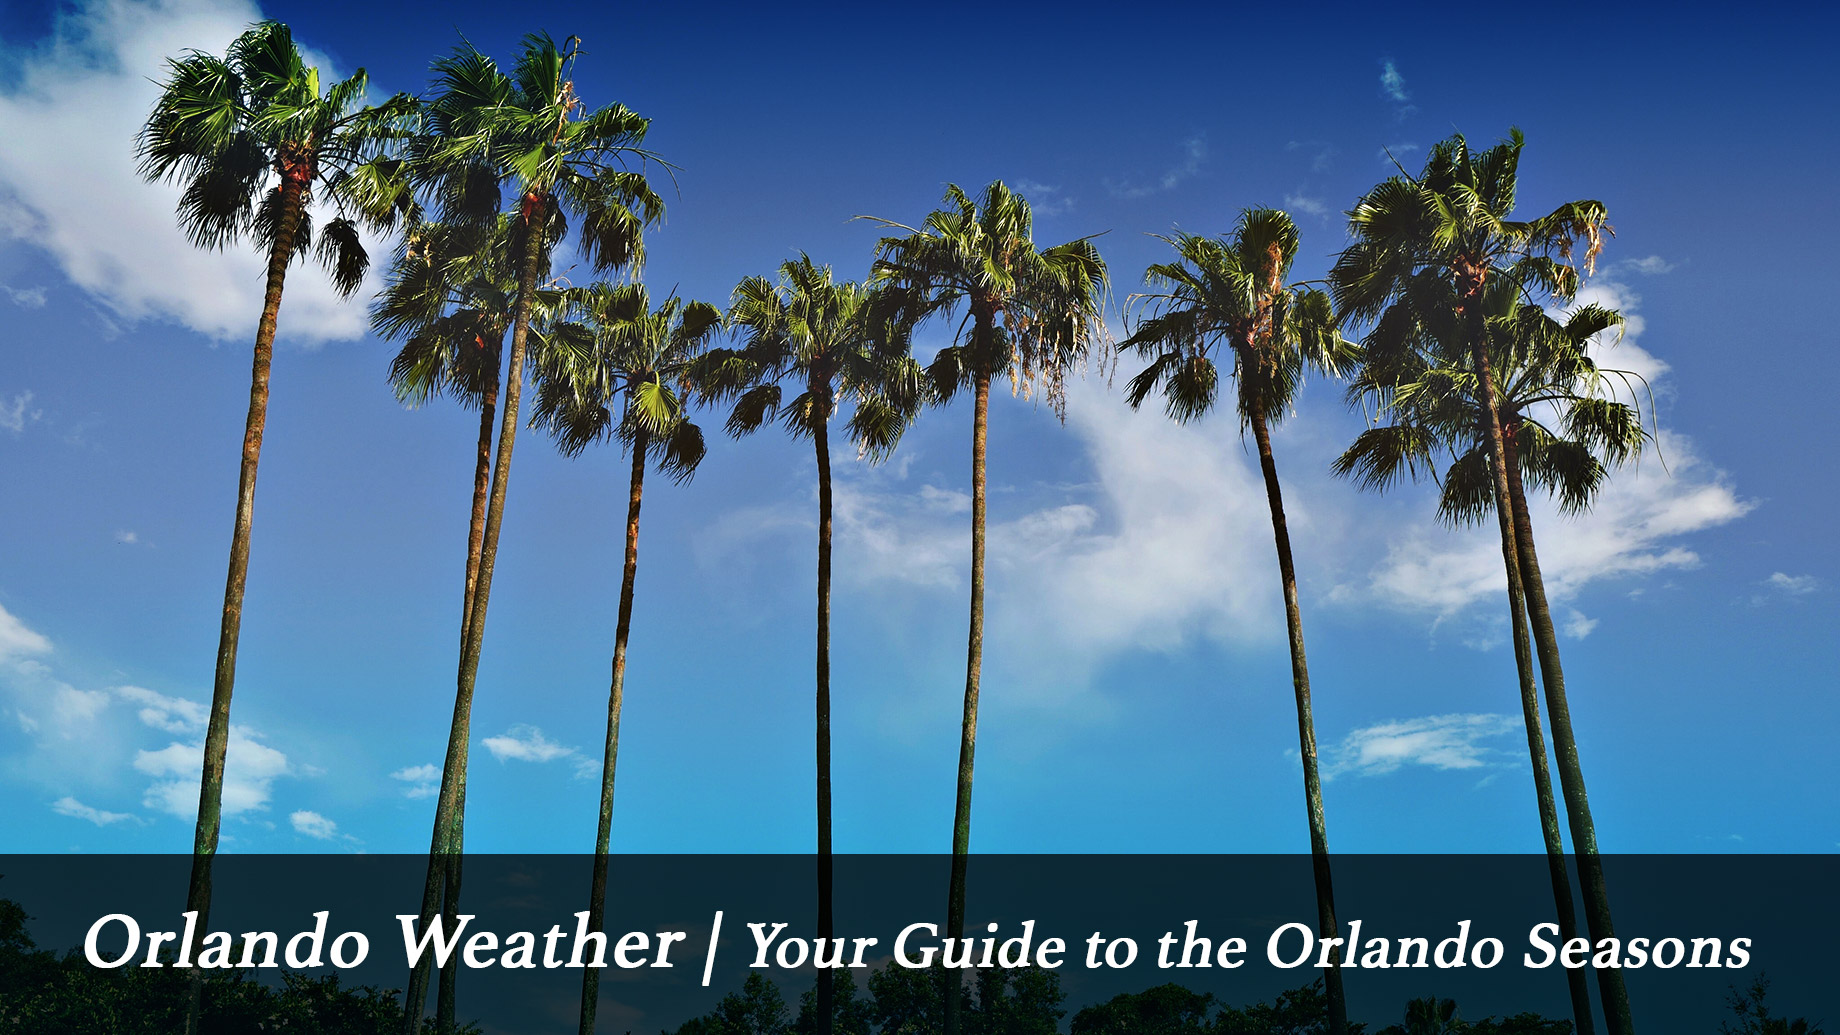 Orlando Weather - Your Guide to the Orlando Seasons